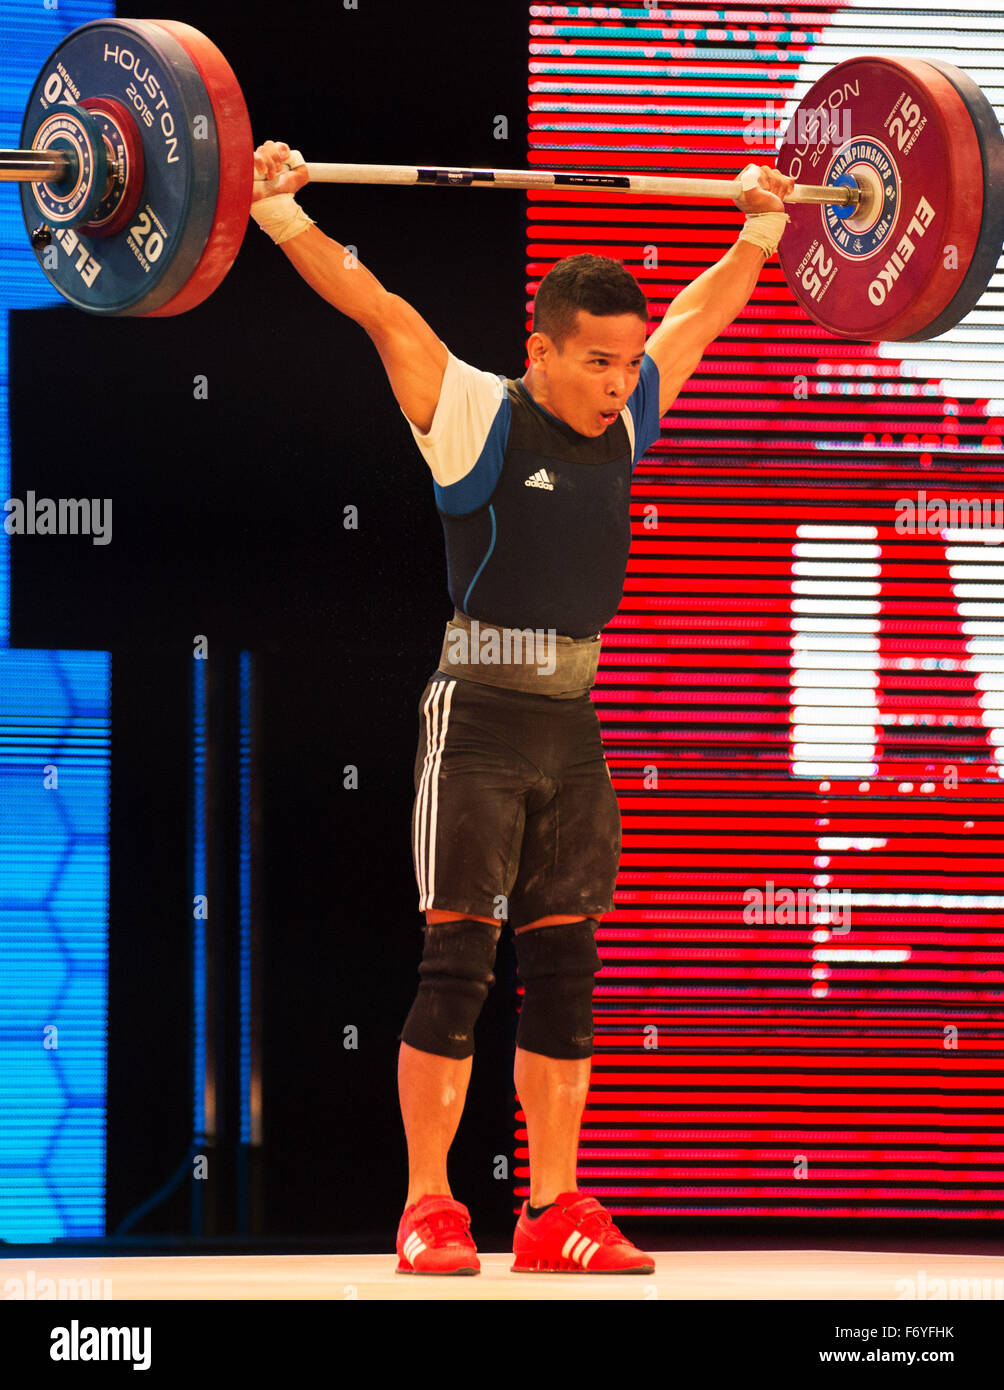 Houston, Texas, USA. 21st November, 2015. Nestor Colonia lifts 124 kilos in the snatch at the World Weightlifting - Stock Image